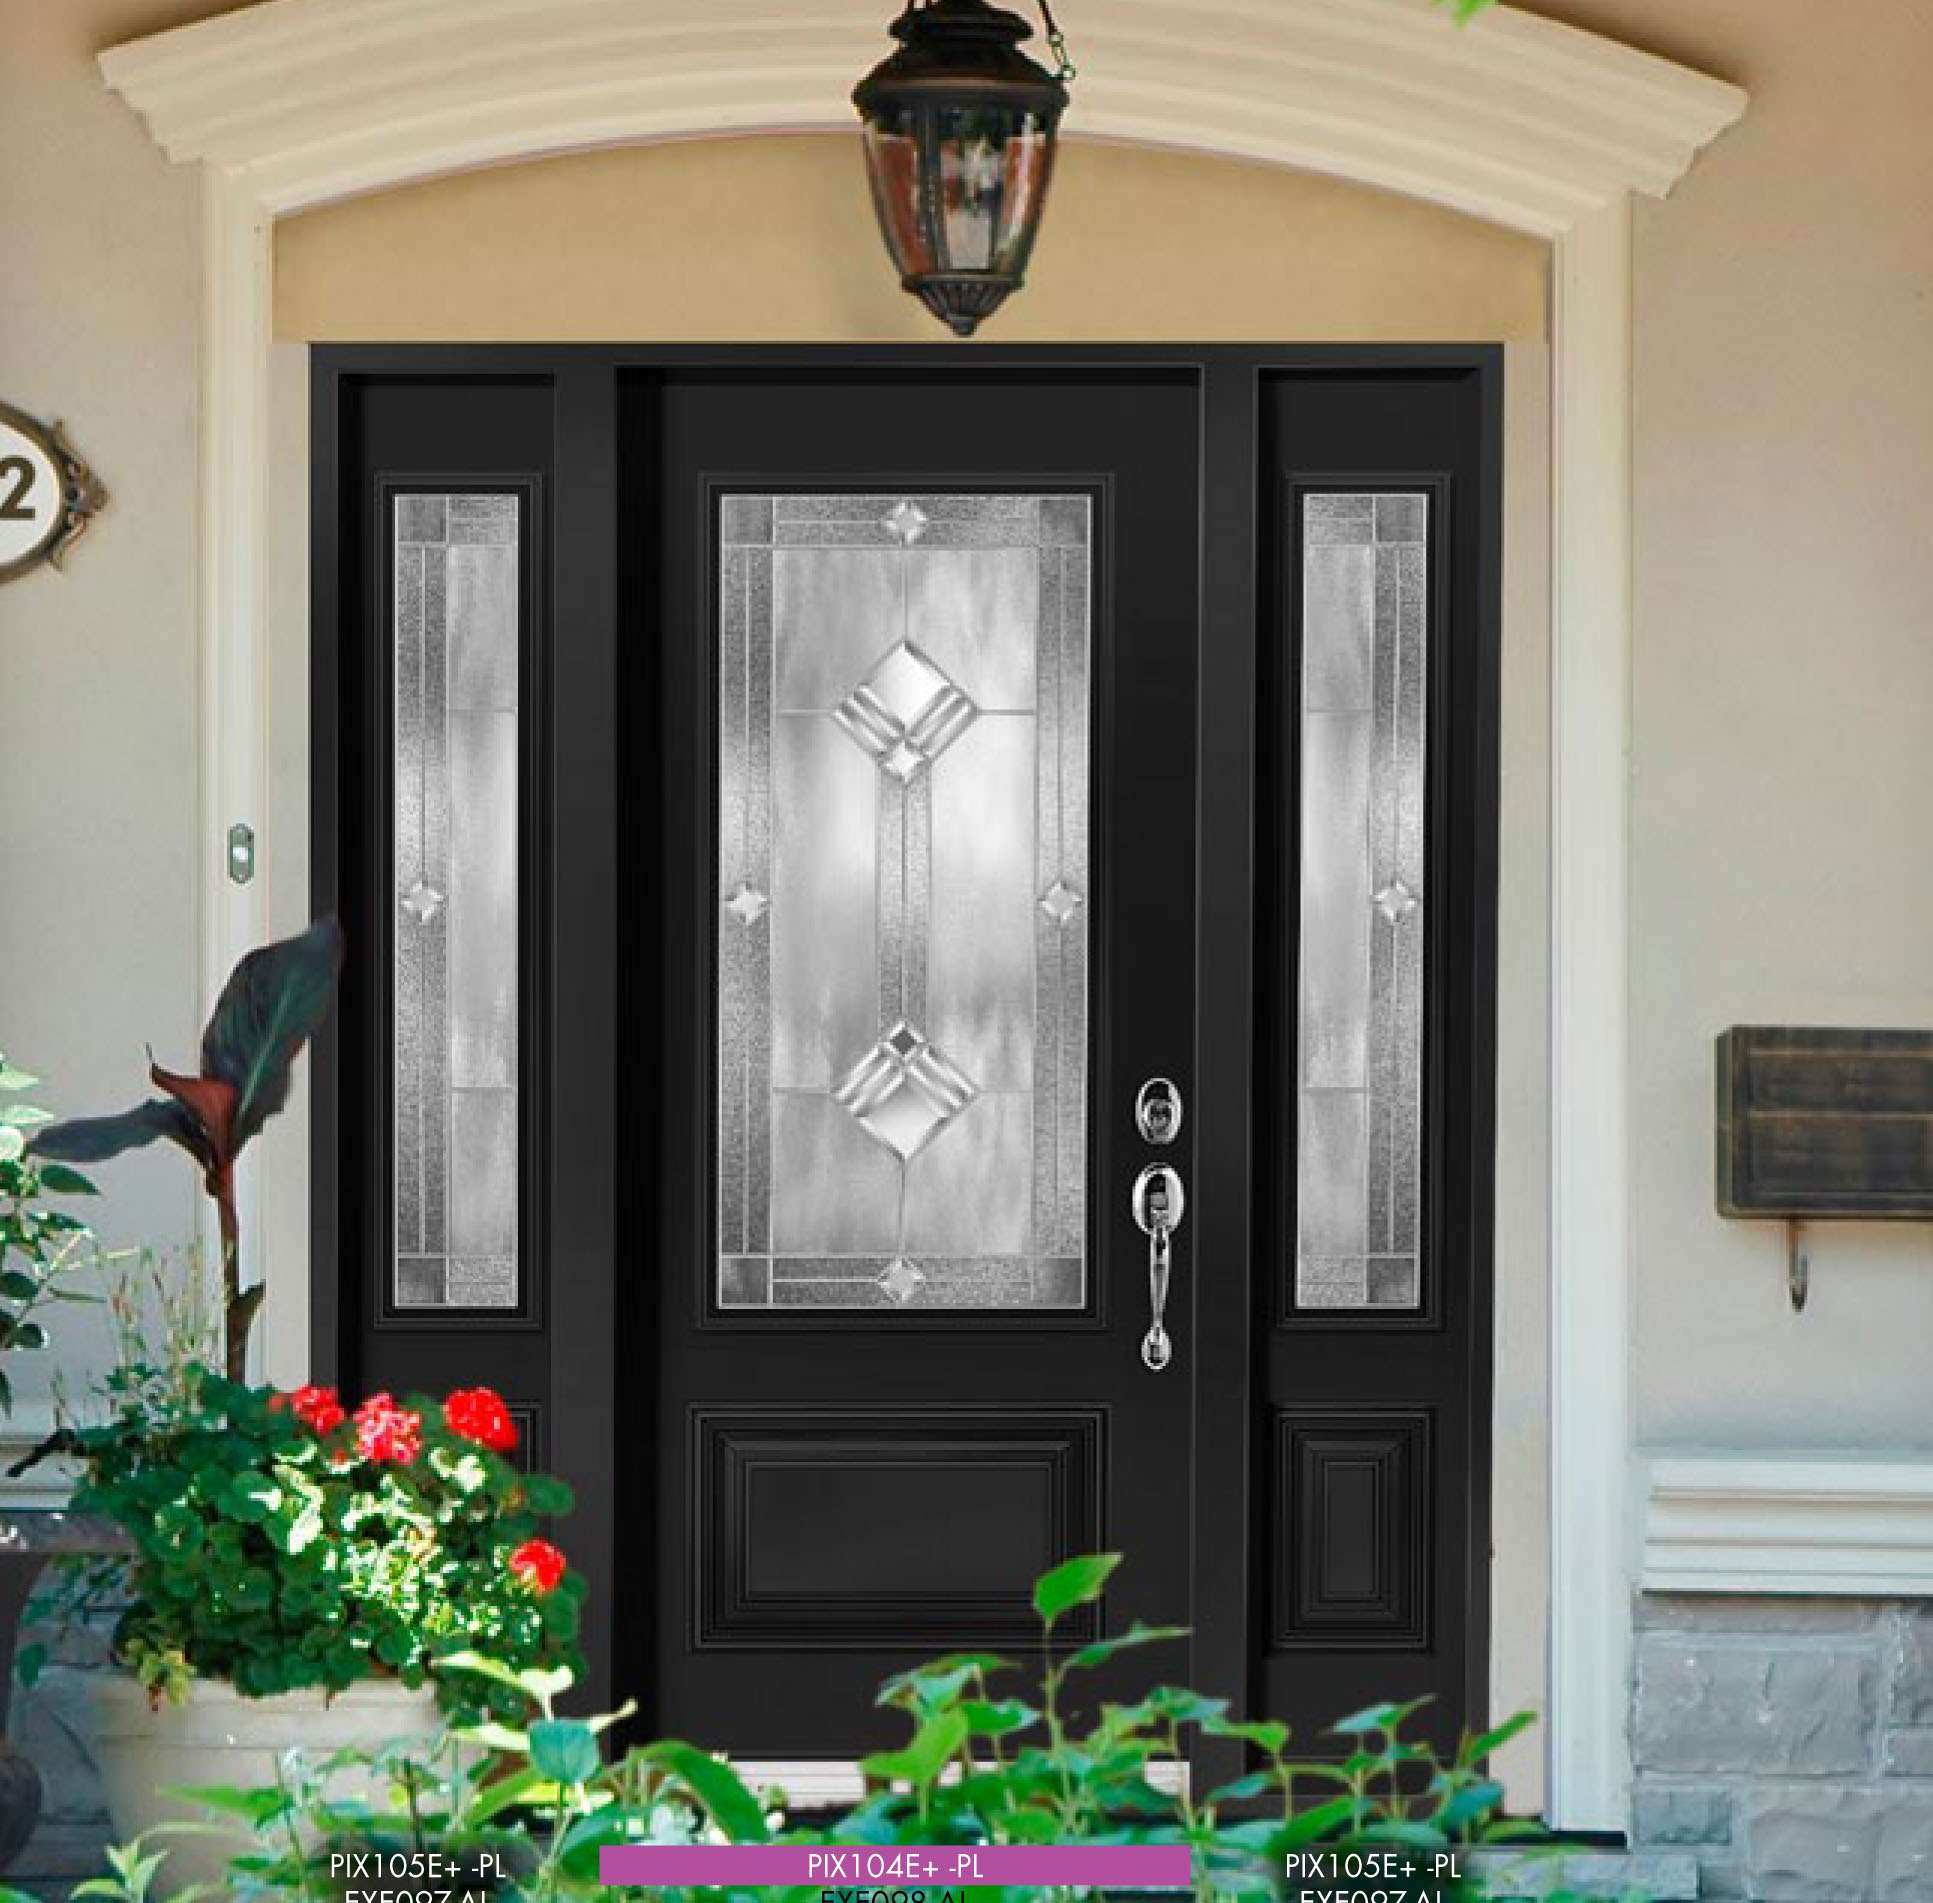 Verre Select Doors Brock Doors Amp Windows Brock Doors